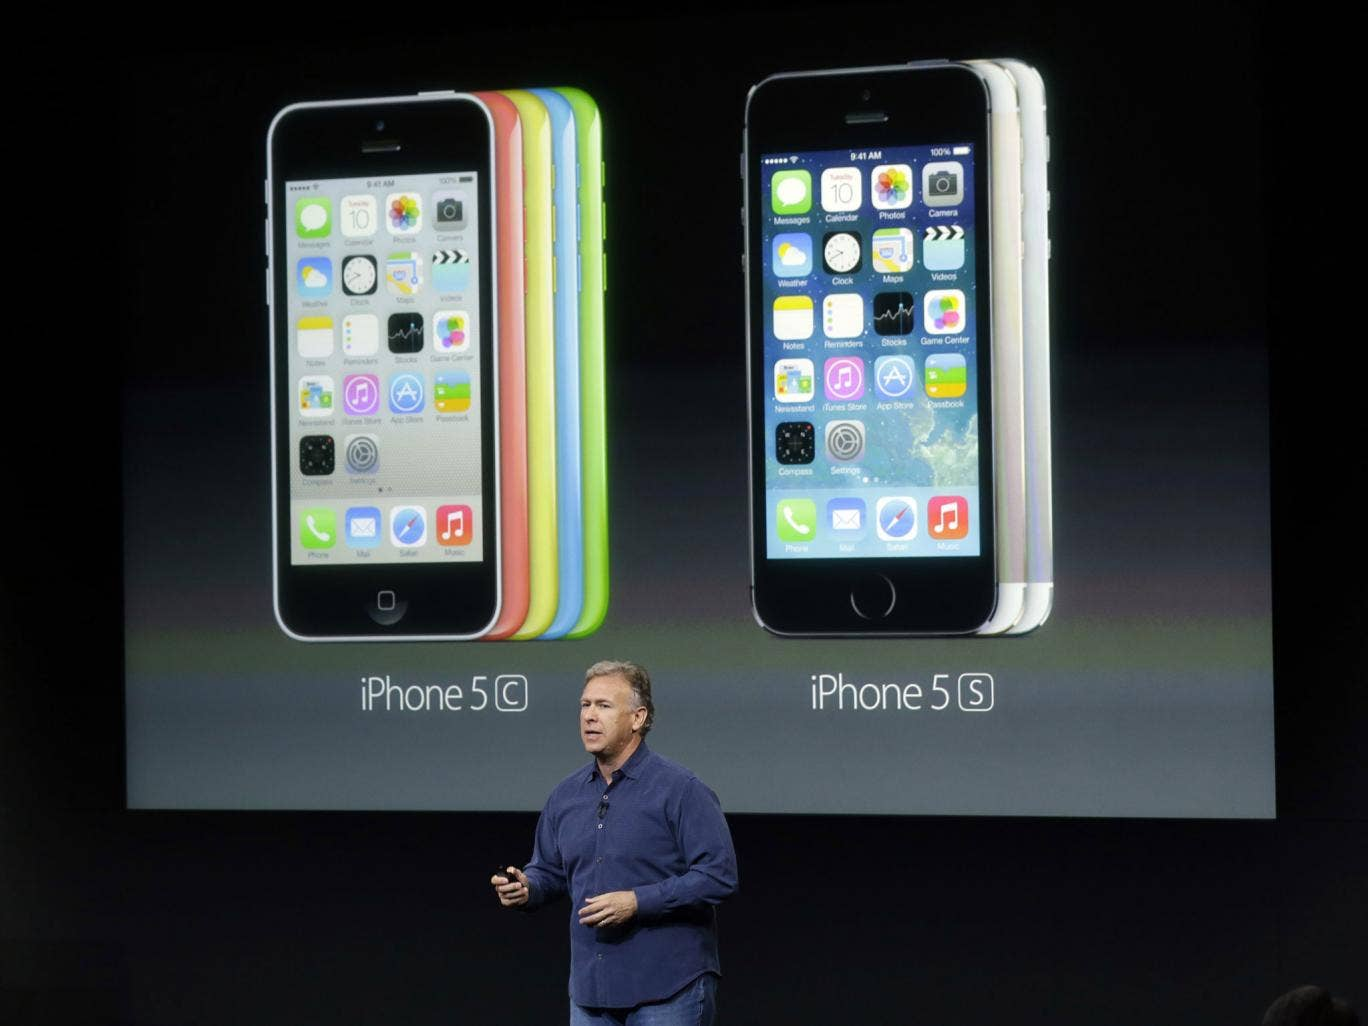 Phil Schiller talks about the pricing of their new products, the iPhone 5C and iPhone 5S